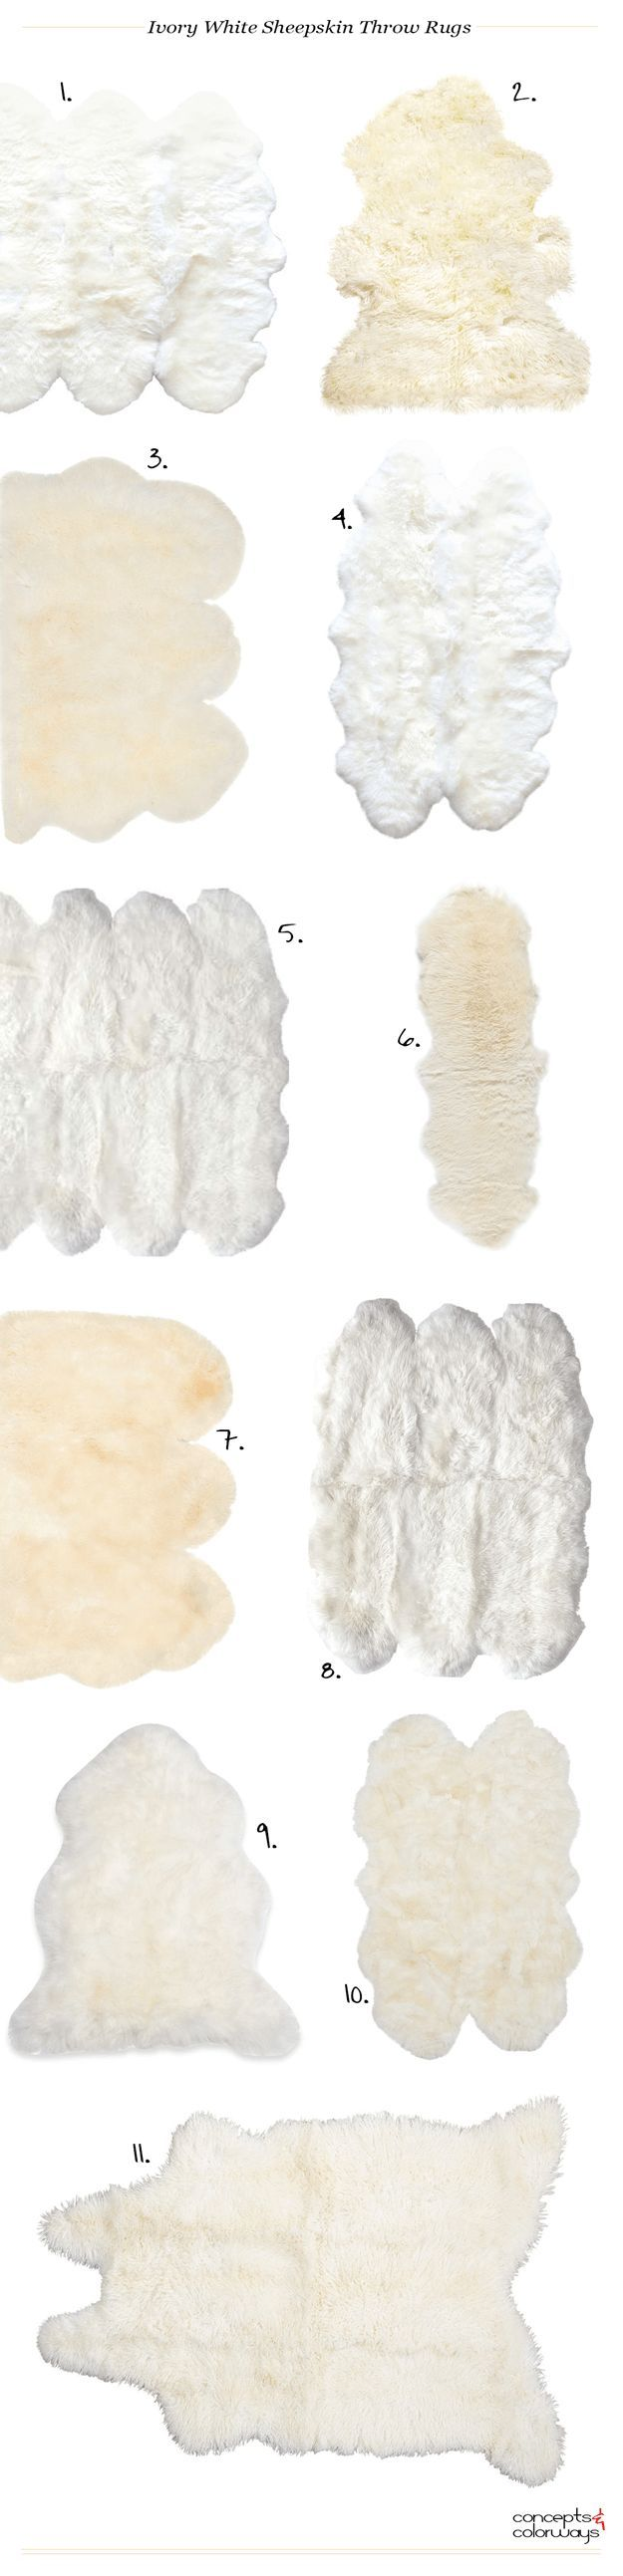 ivory white sheepskin throw rugs, interiors product roundup, get the look